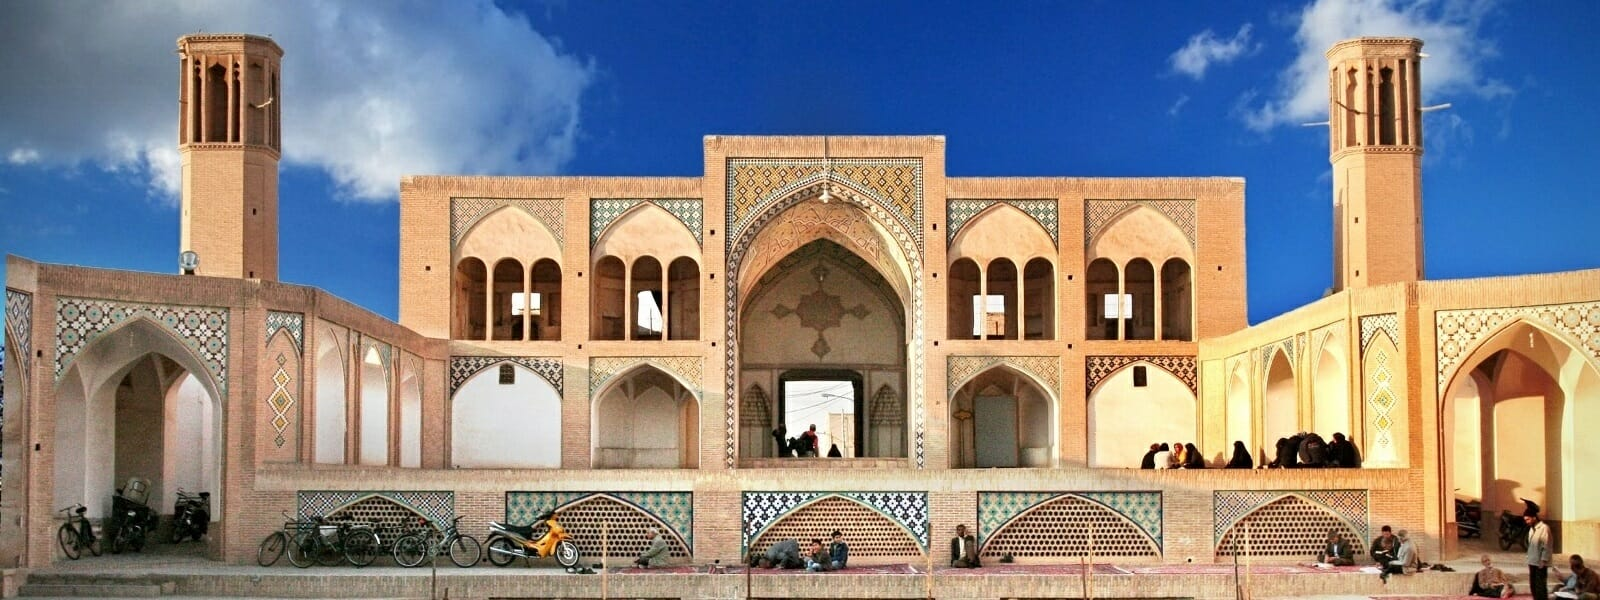 Agha Bozorg Mosque - Kashan - Iran Tours Highlight